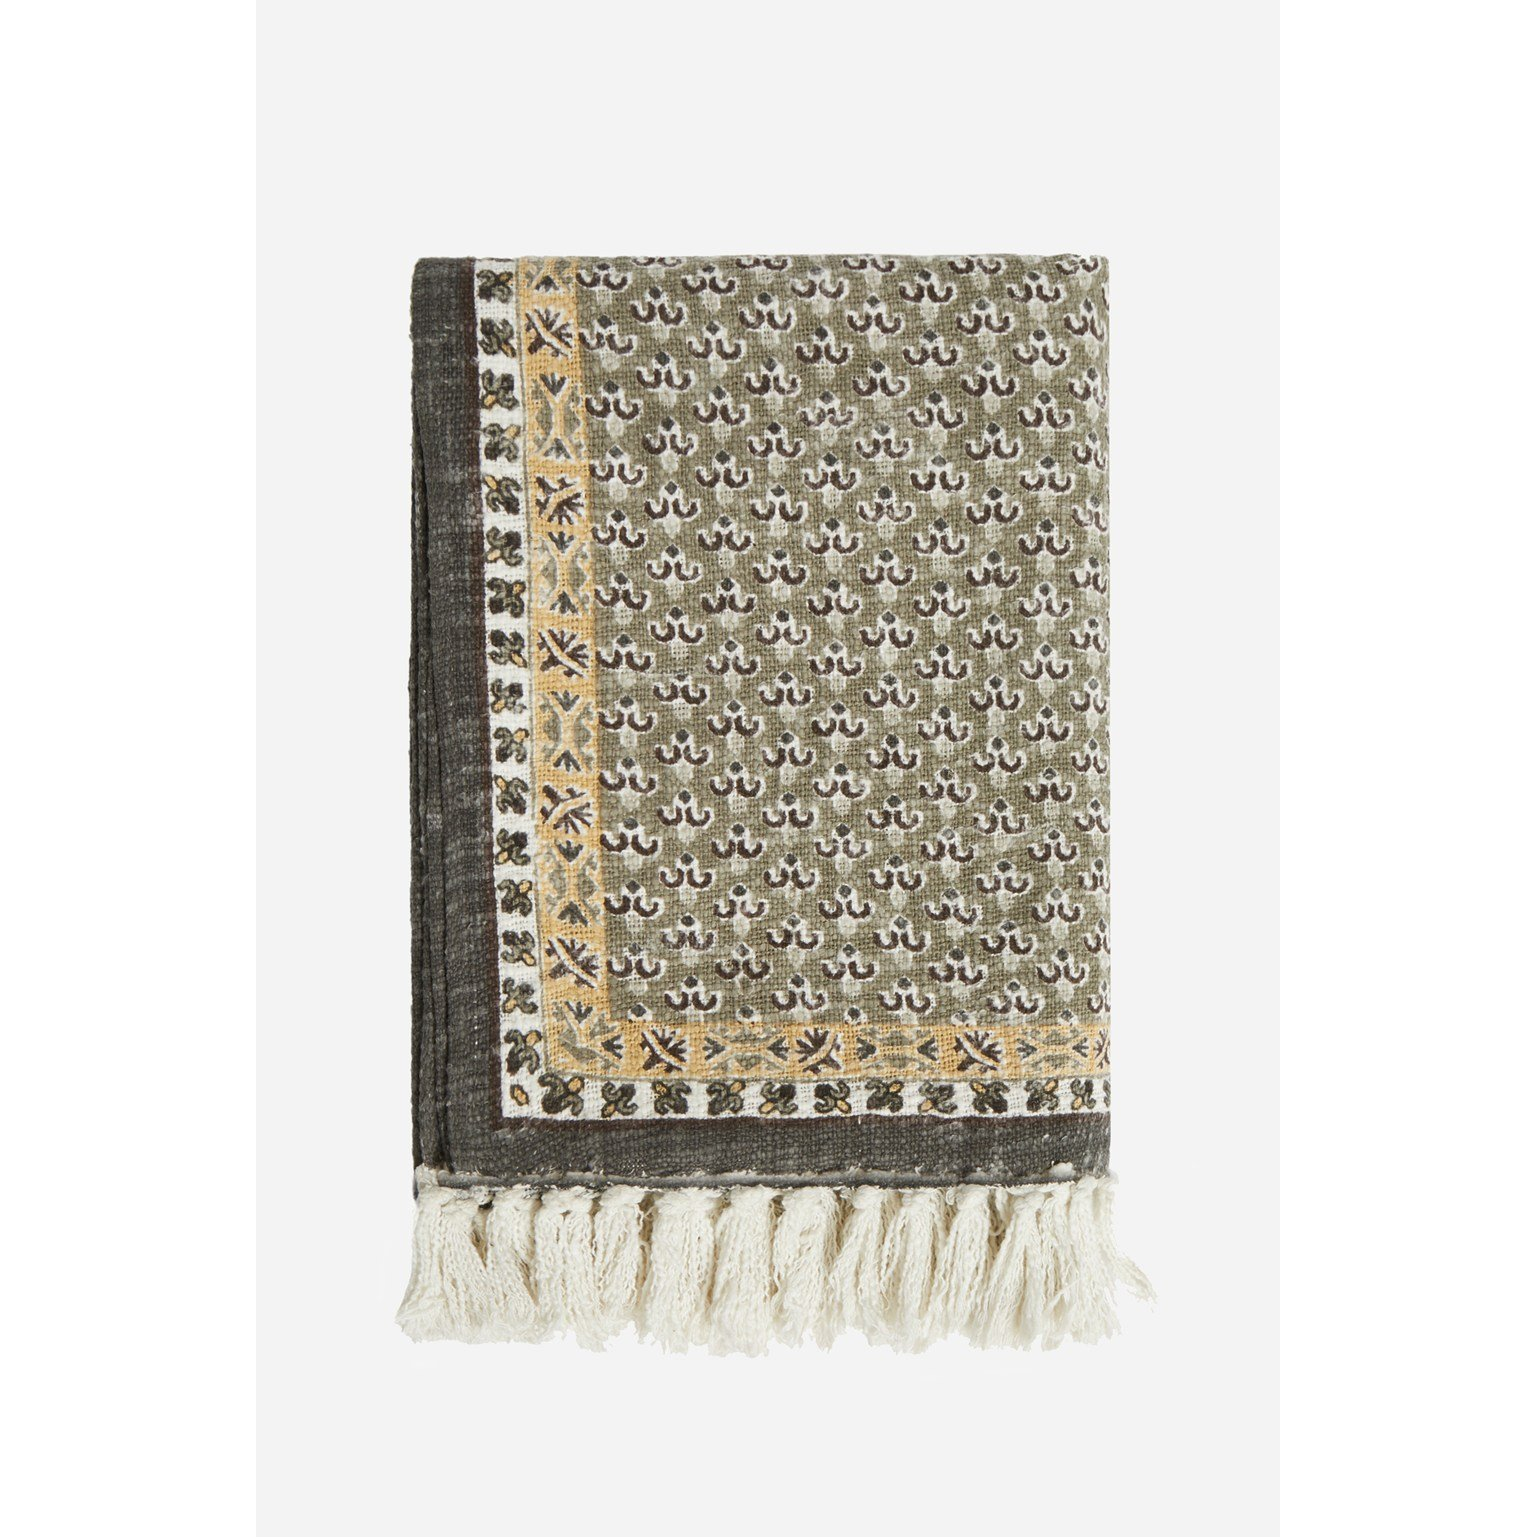 image-Poppy Field Natural Throw - natural